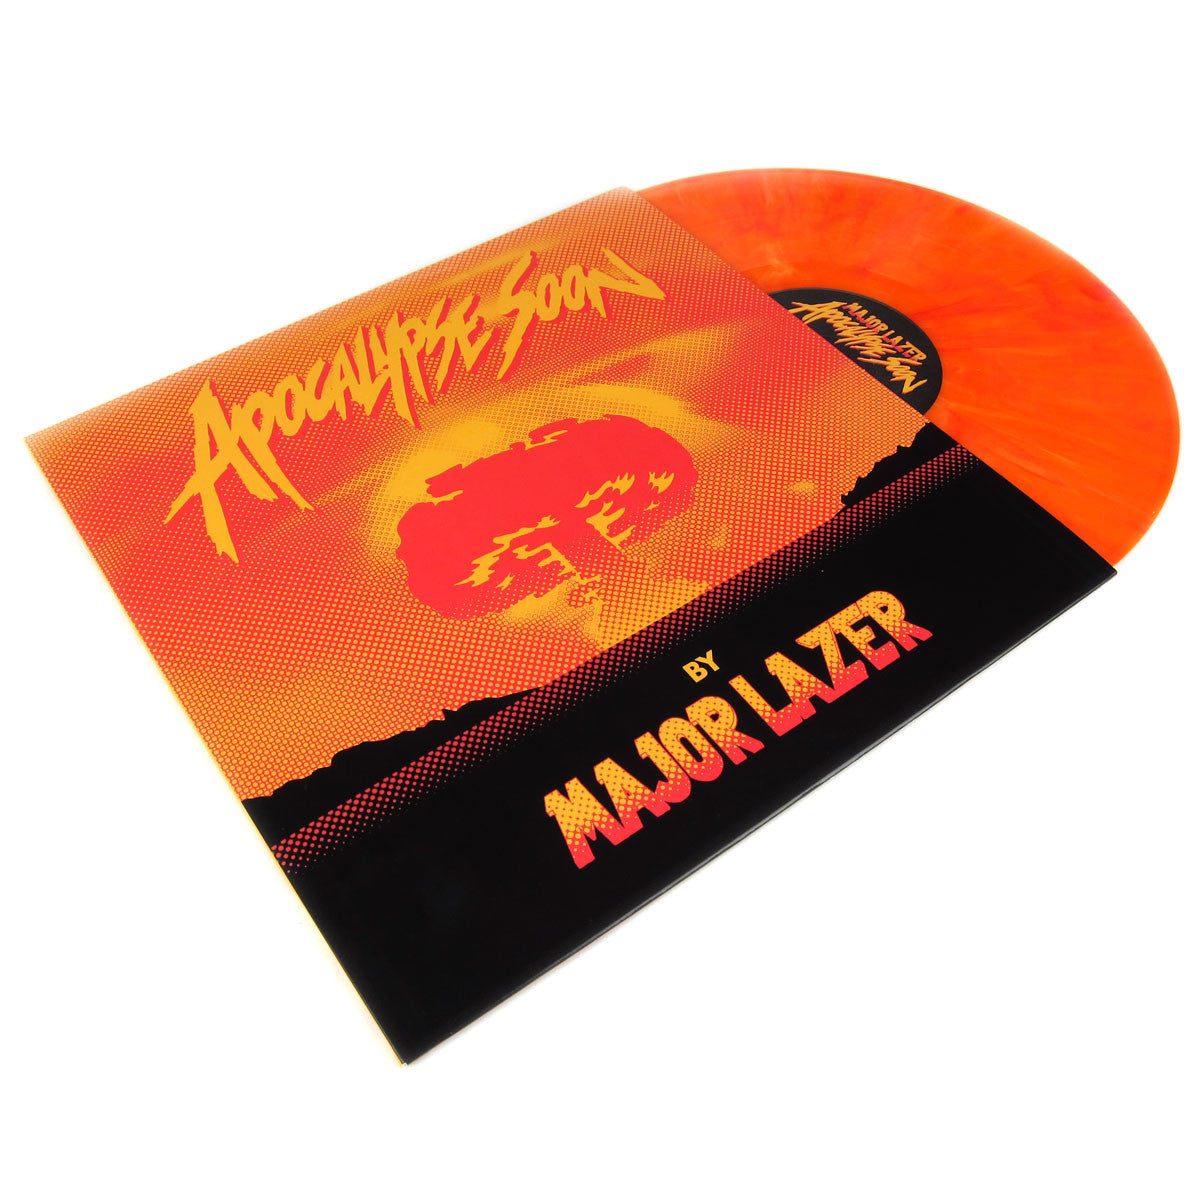 Major Lazer: Apocalypse Soon (Pharrell,Colored Vinyl, Free MP3) Vinyl 12""